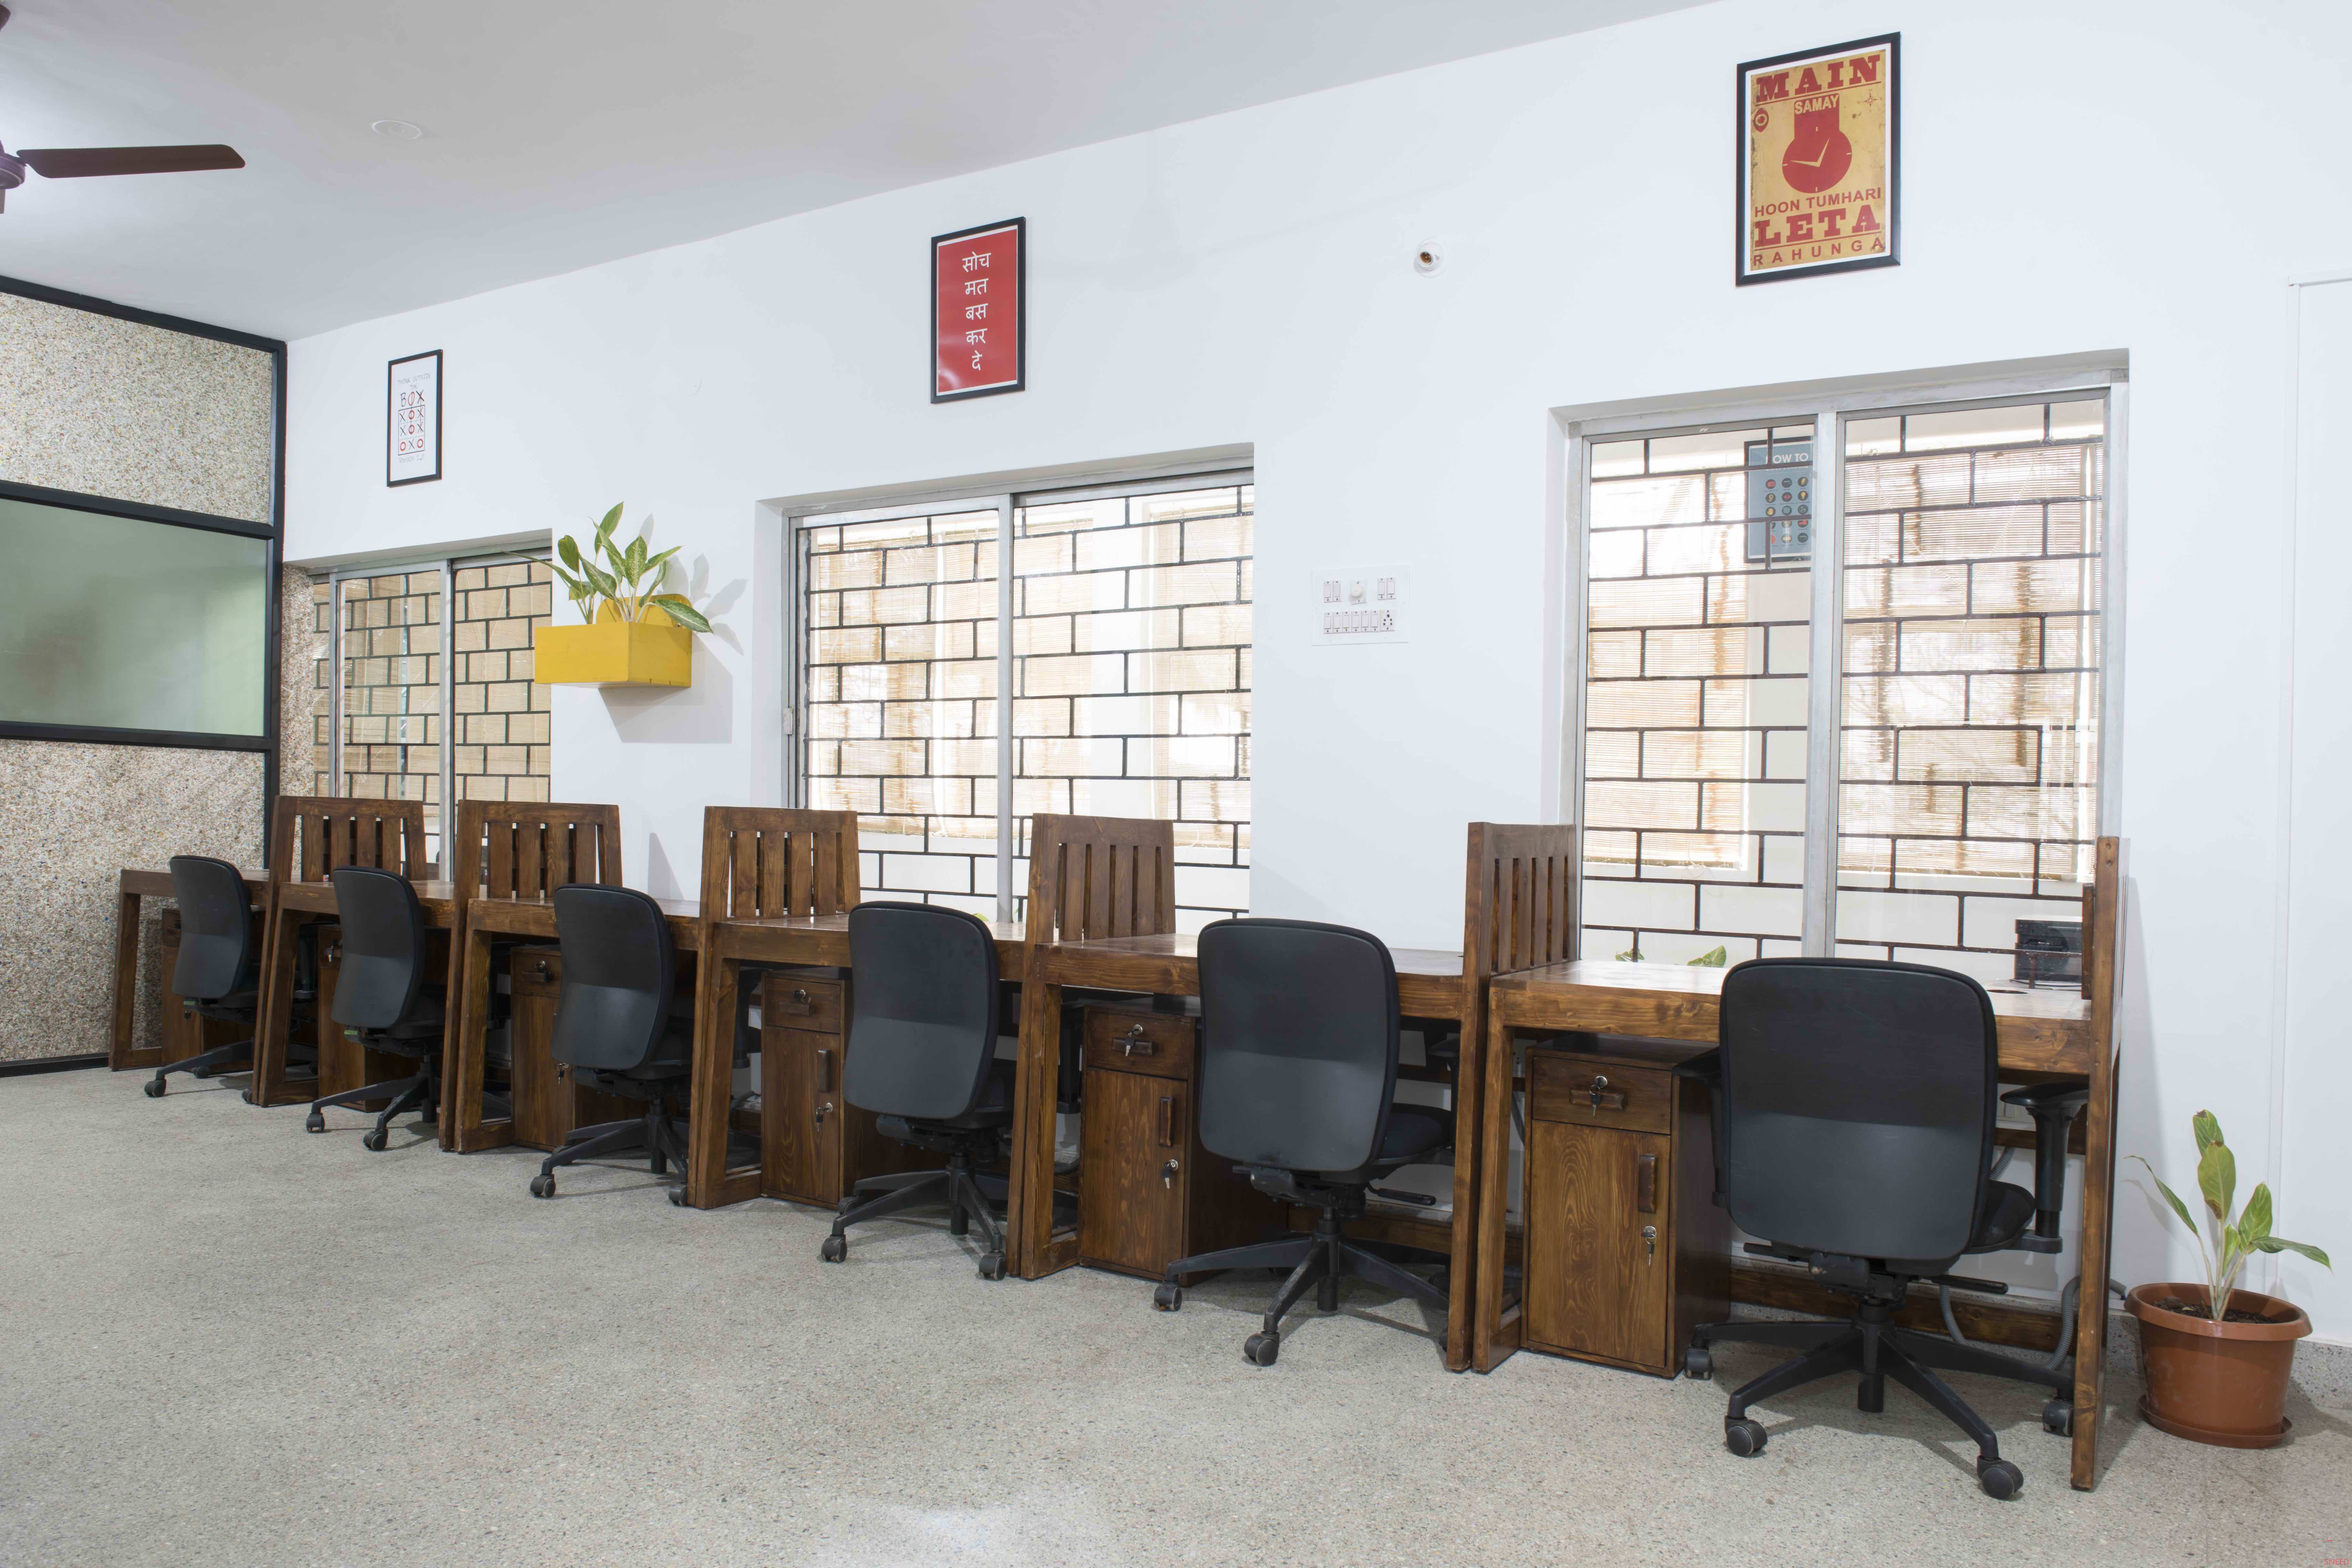 16 seaters Open Desk image